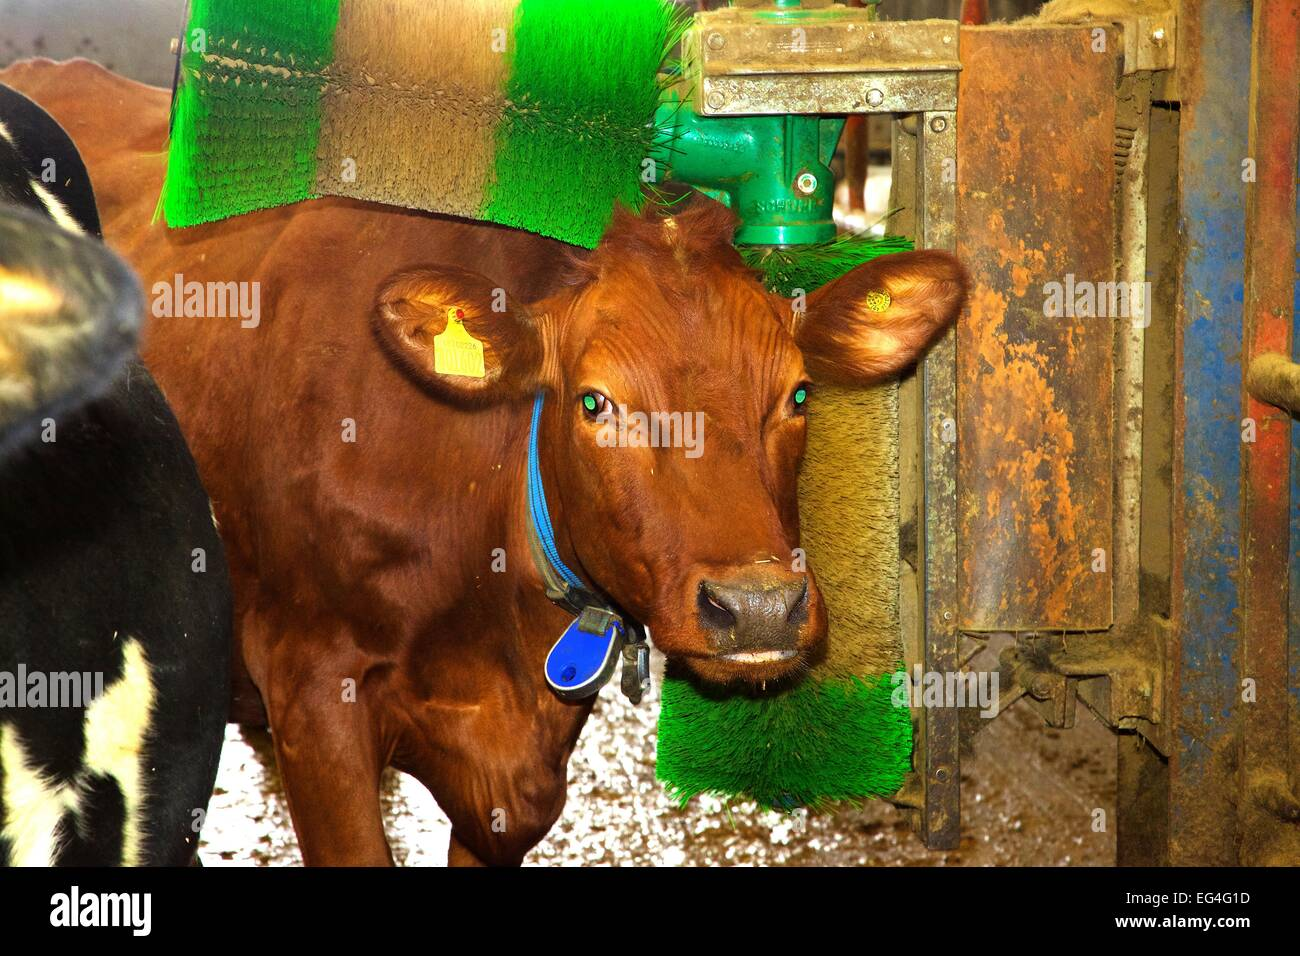 Cow Brush Stock Photos & Cow Brush Stock Images - Alamy